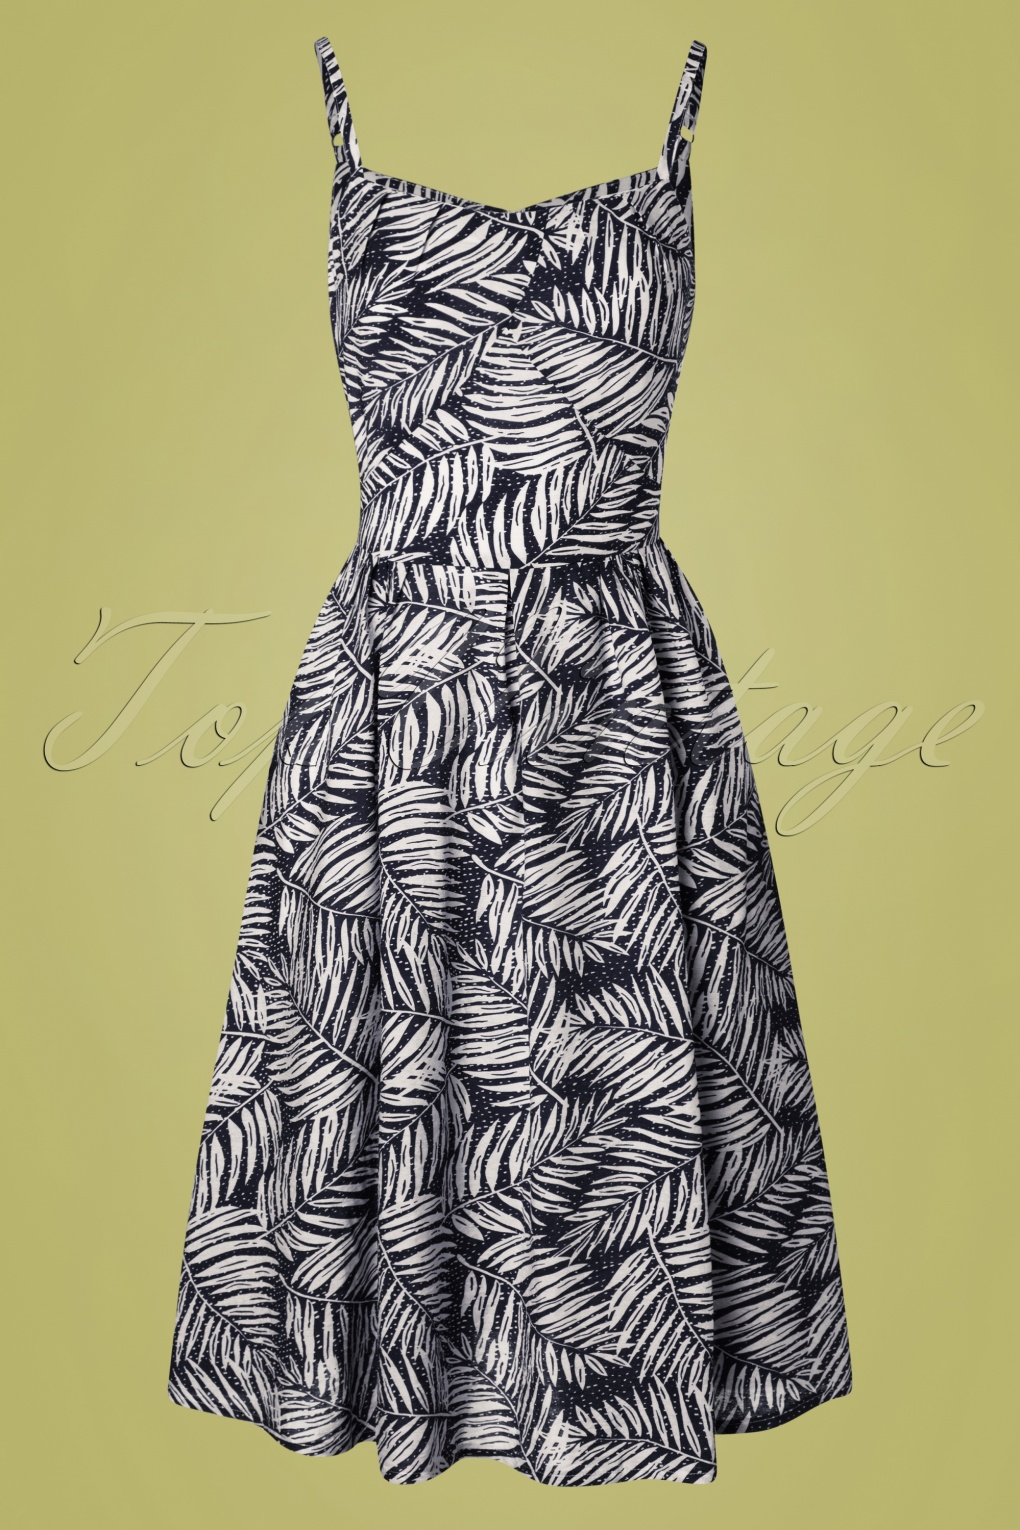 Retro Tiki, Tropical, Hawaiian Style Dresses 50s Palm Days Dress in Navy £46.71 AT vintagedancer.com